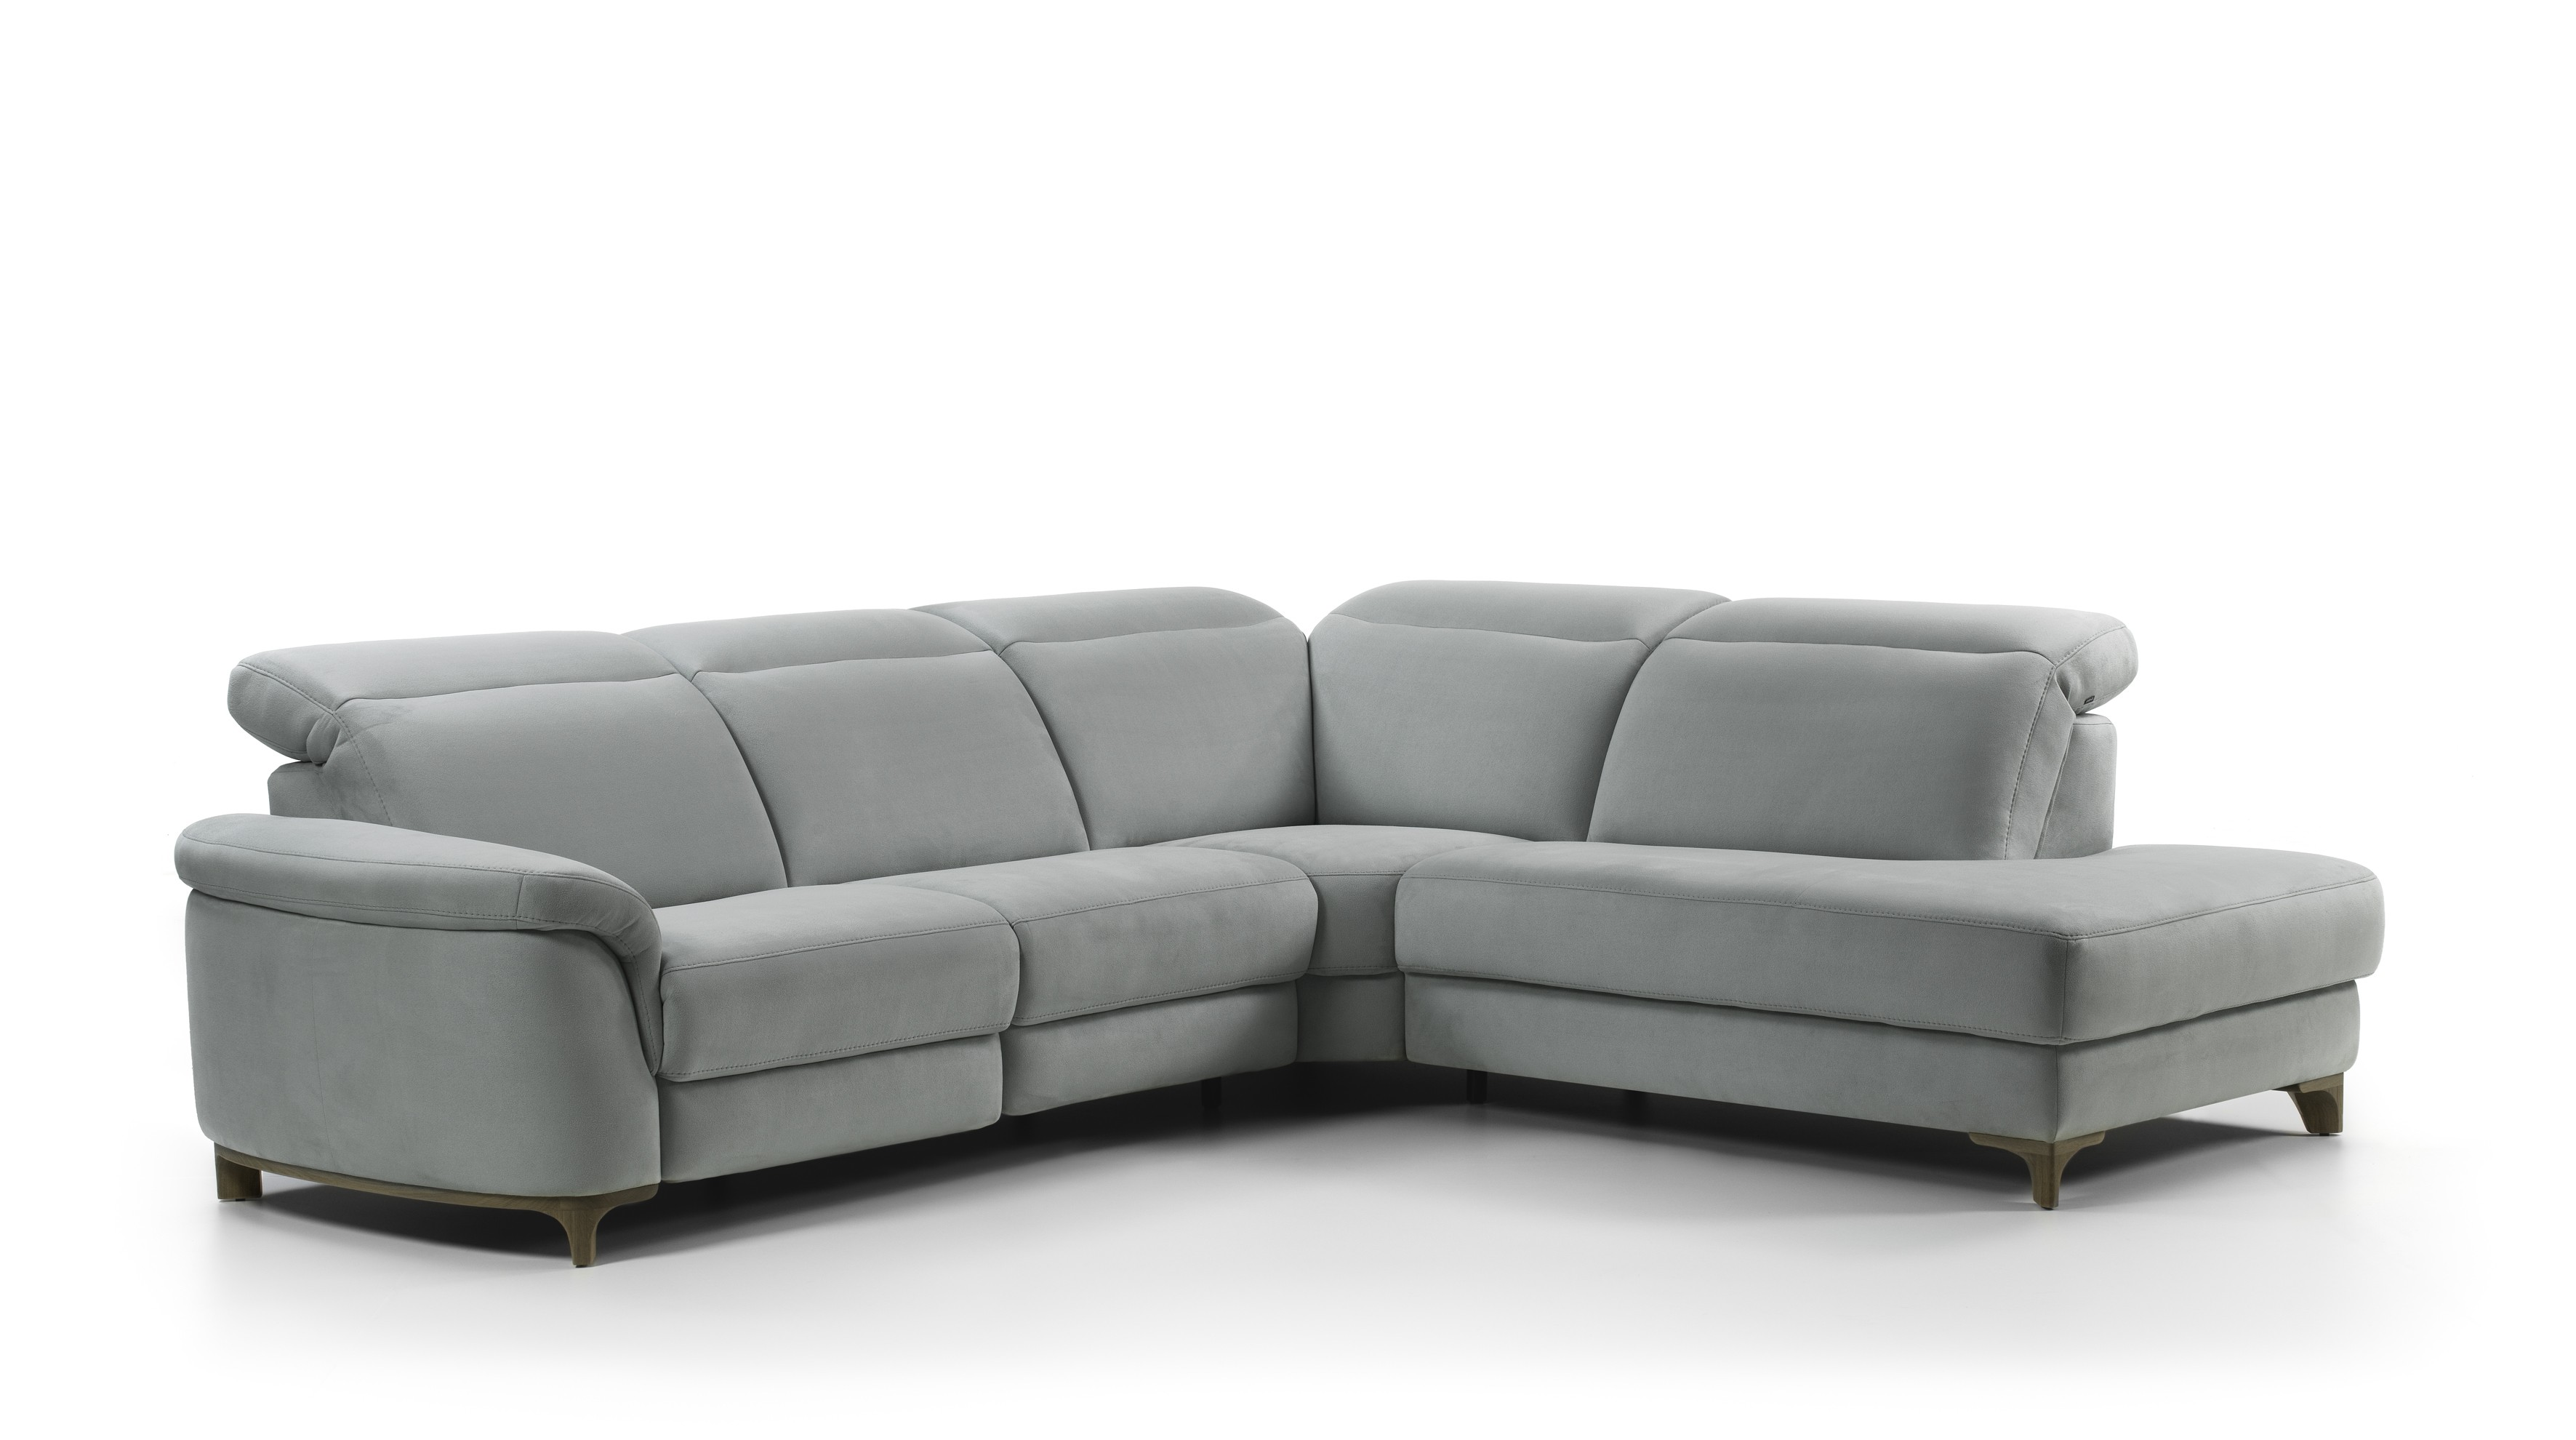 Awesome Bellona Leather Sectional | Rom | Made In Belgium